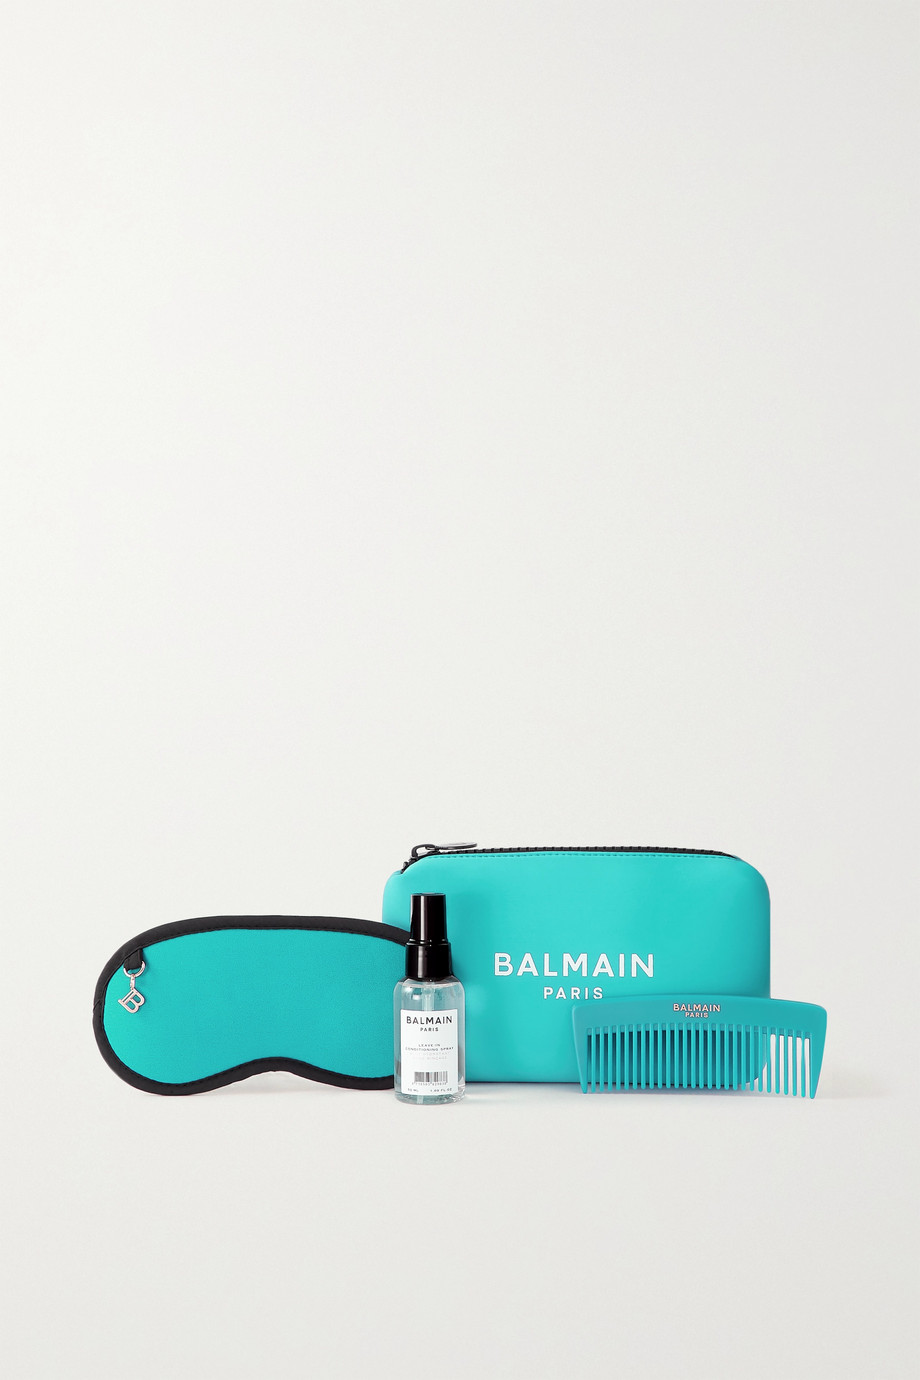 BALMAIN PARIS HAIR COUTURE Cosmetic Bag Set - Turquoise